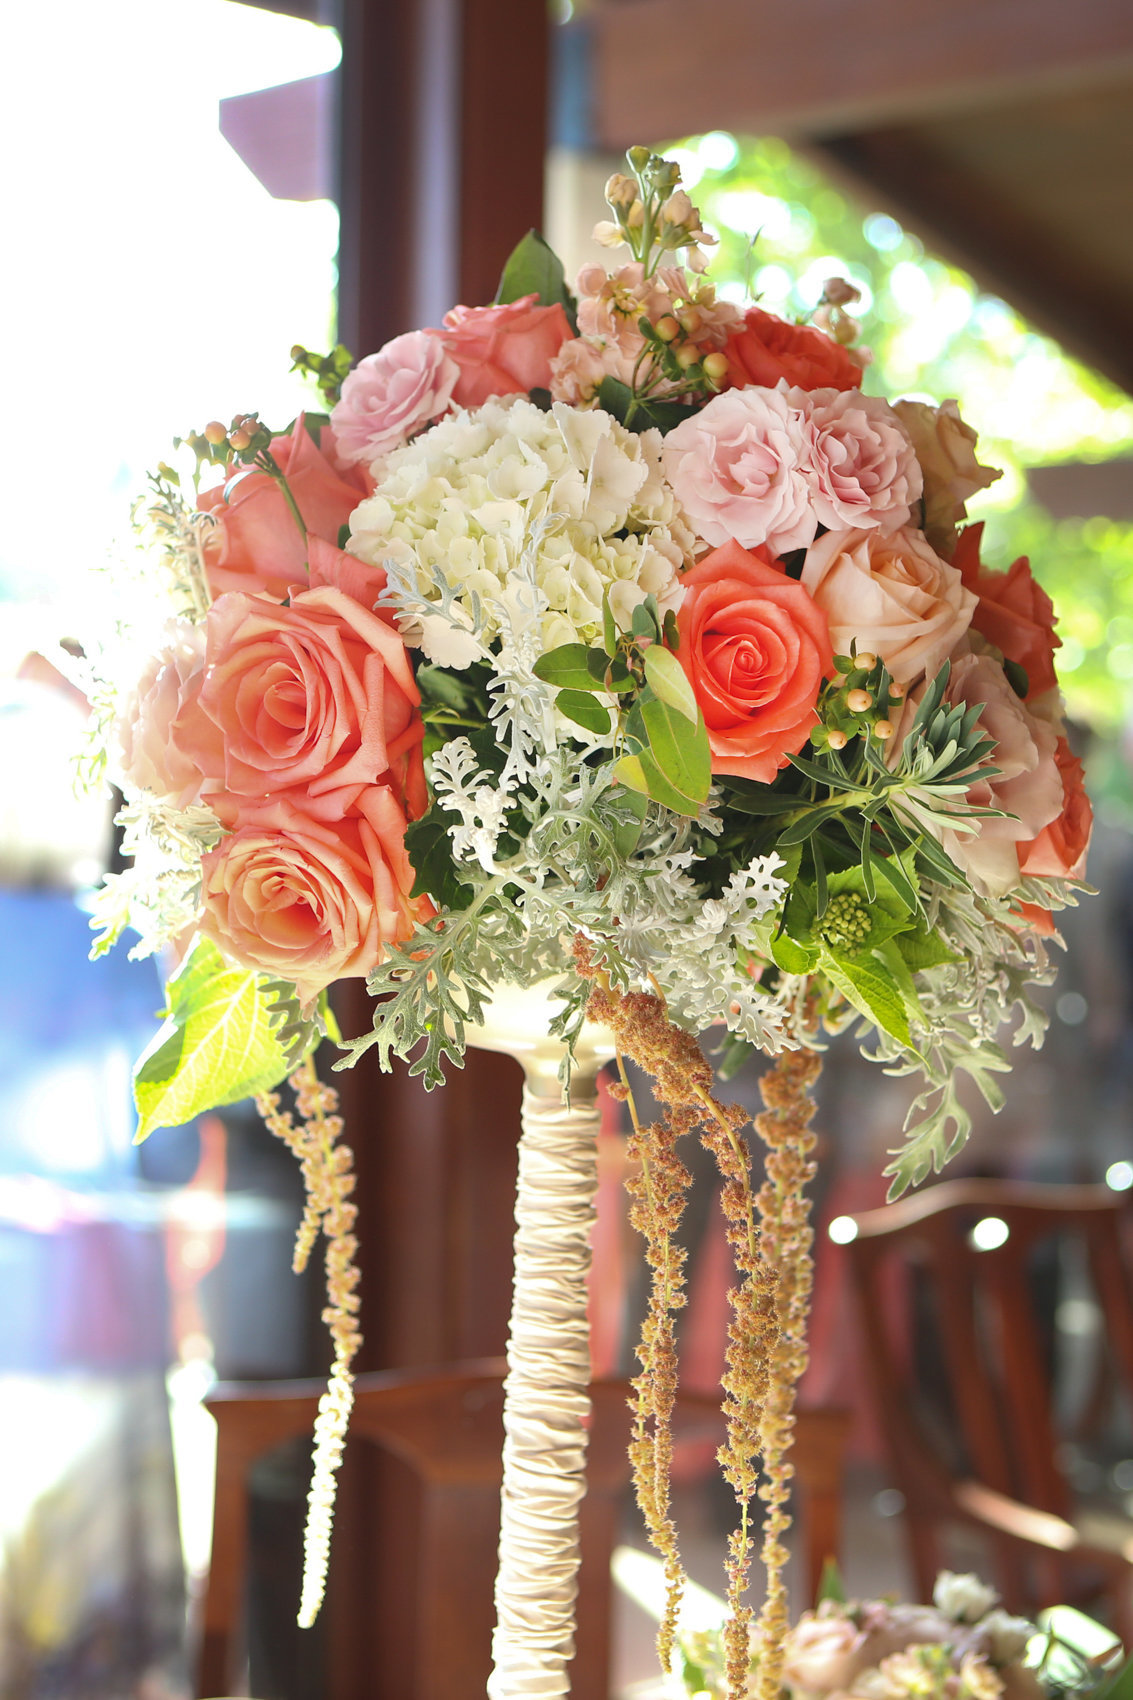 Northern california wedding in los altos, colorful image of bouquet